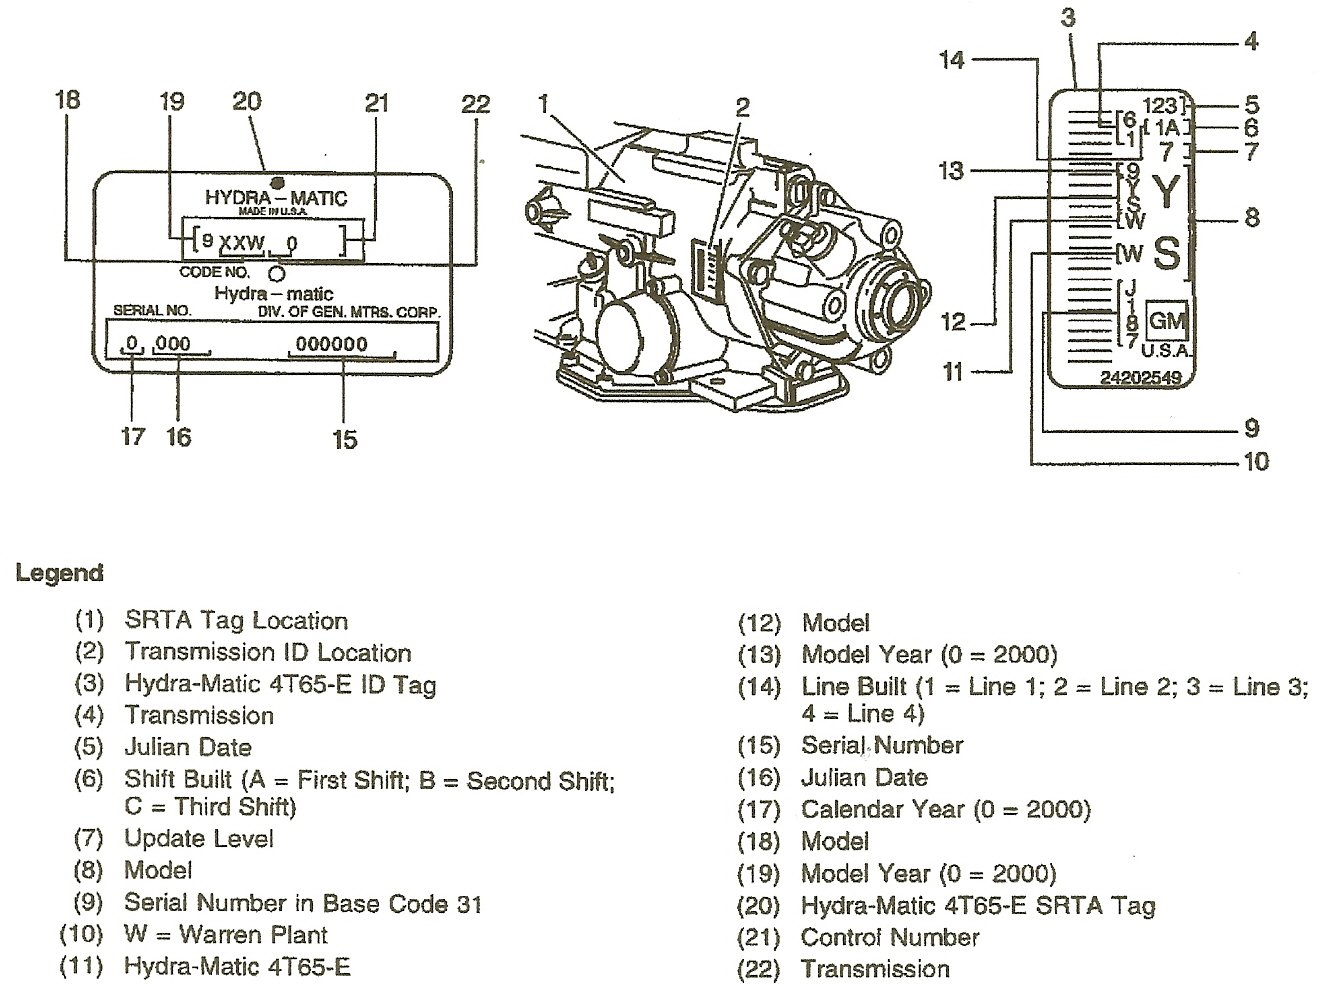 2000 Pontiac Montana Ignition Switch Diagram Wiring Worksheet And 97 Bonneville Engine I Have A M Going To Change The Trans My Rh Justanswer Com 04 Grand Prix Diagrams